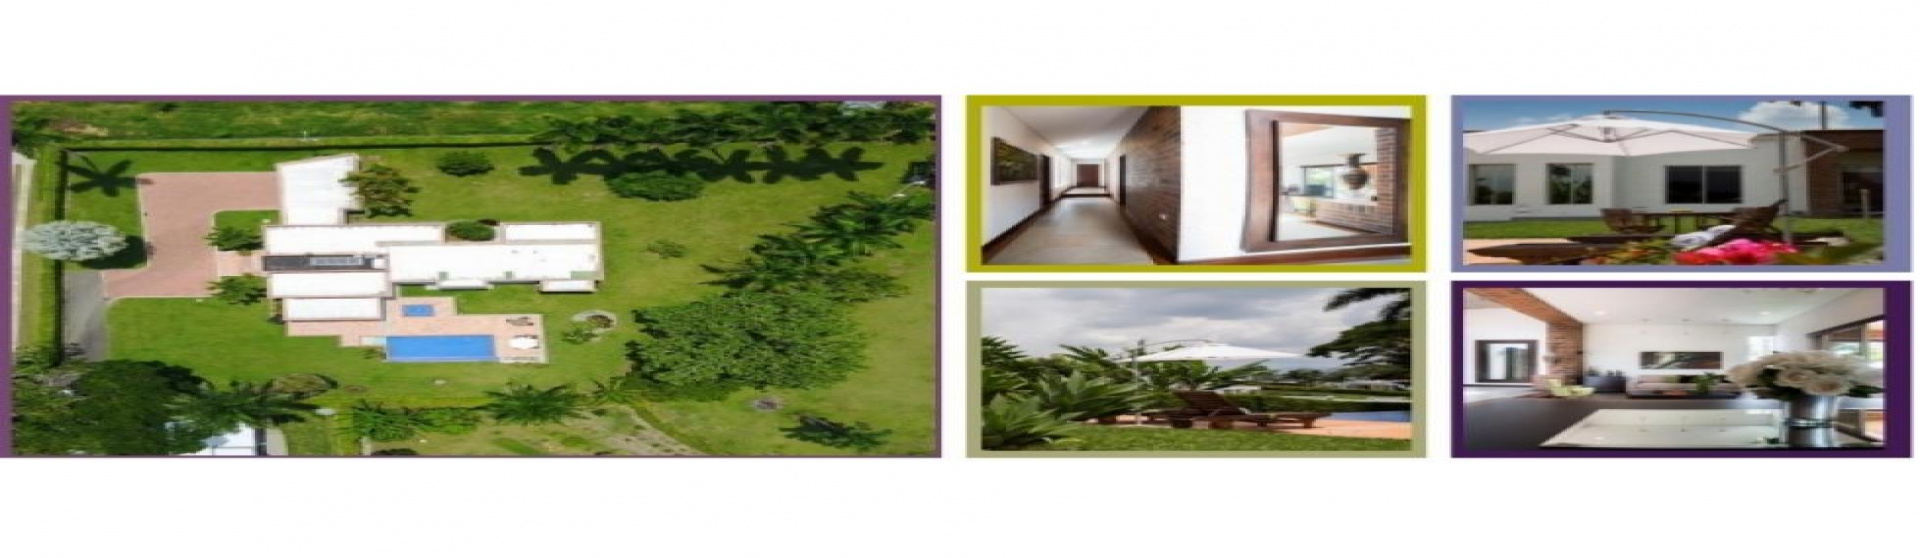 Quindío Department, Armenia, 4 Bedrooms Bedrooms, ,5 BathroomsBathrooms,Villa,For Sale,Quindío Department, Armenia,20684